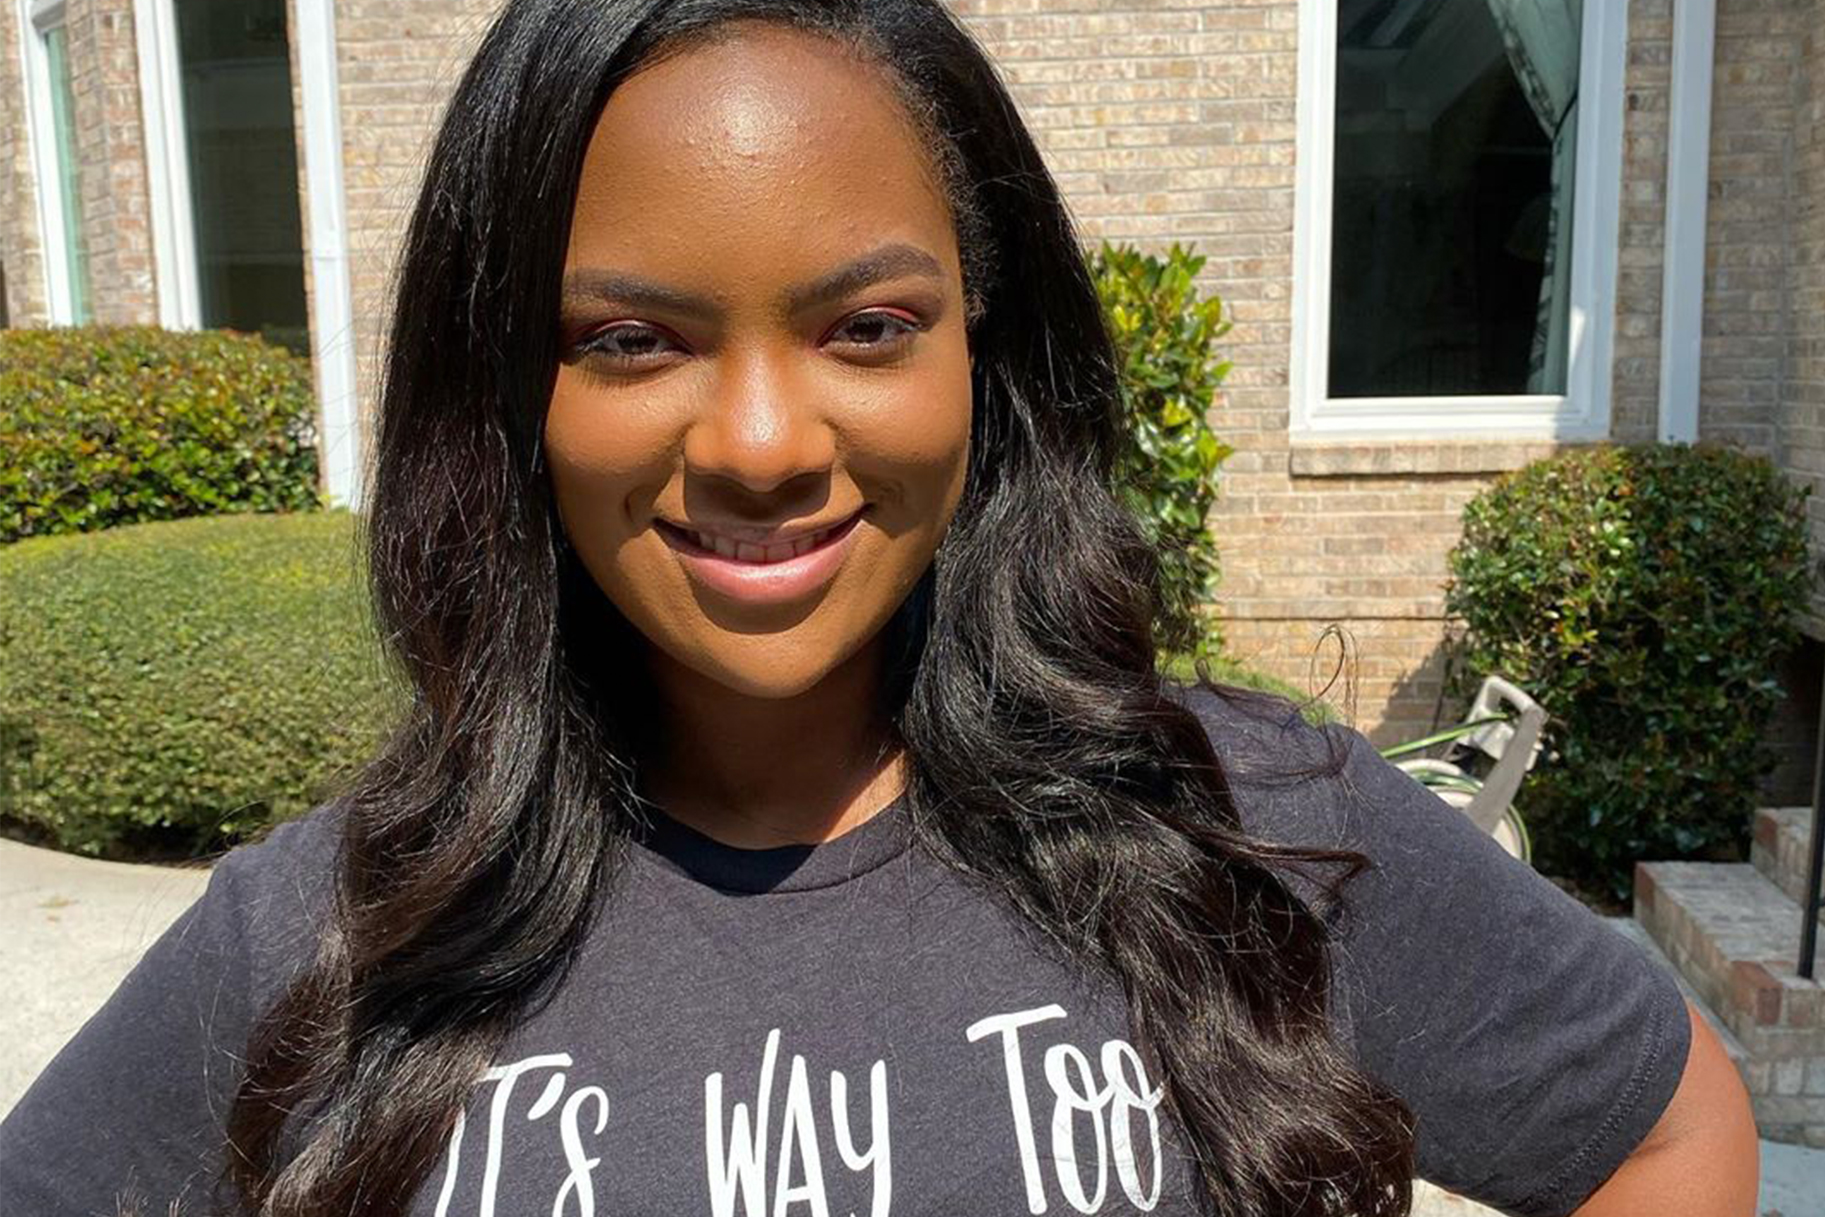 riley-burruss-shows-fans-her-nose-job-and-while-kandi-loves-the-result-lots-of-fans-criticize-it